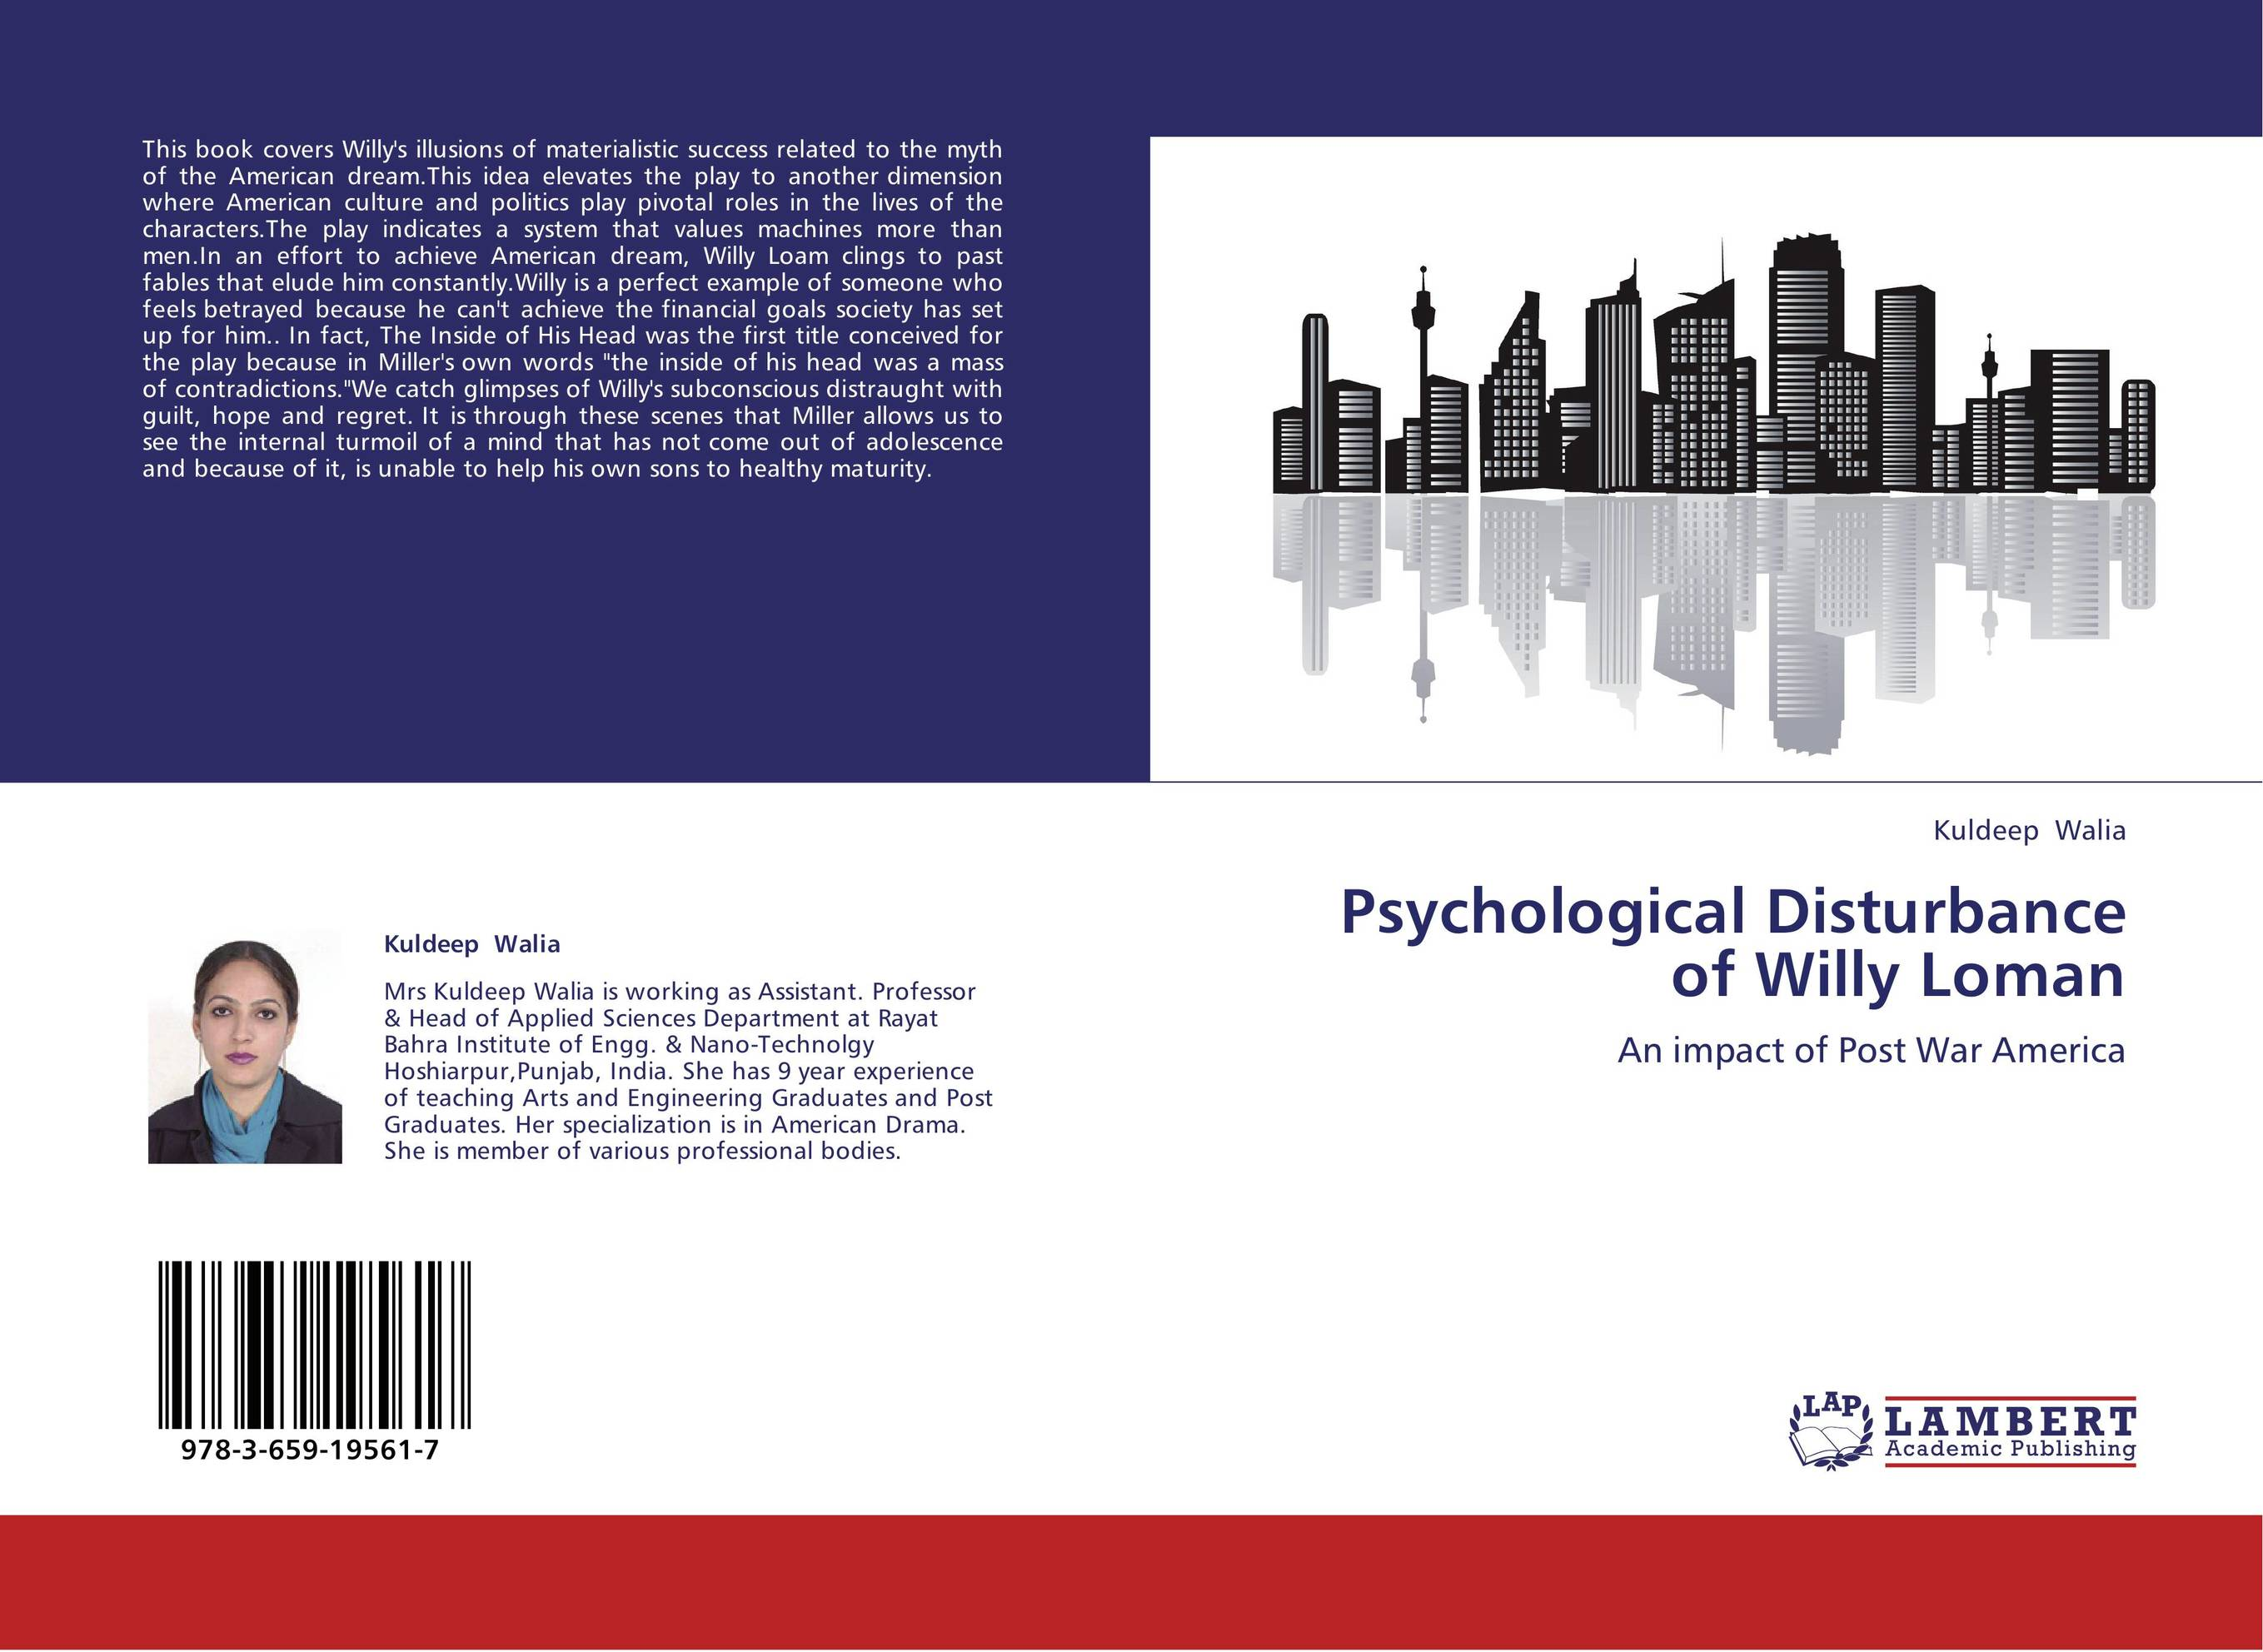 the unrealistic dreams of willy loman Even this dream has changed in recent times, particularly after instead of perseverance and audacity, salesmanship enters the erroneous dream's basis profit is ultimately the justification to making a sale (coalman 132-133) willy loman & the american dream specifically for you.